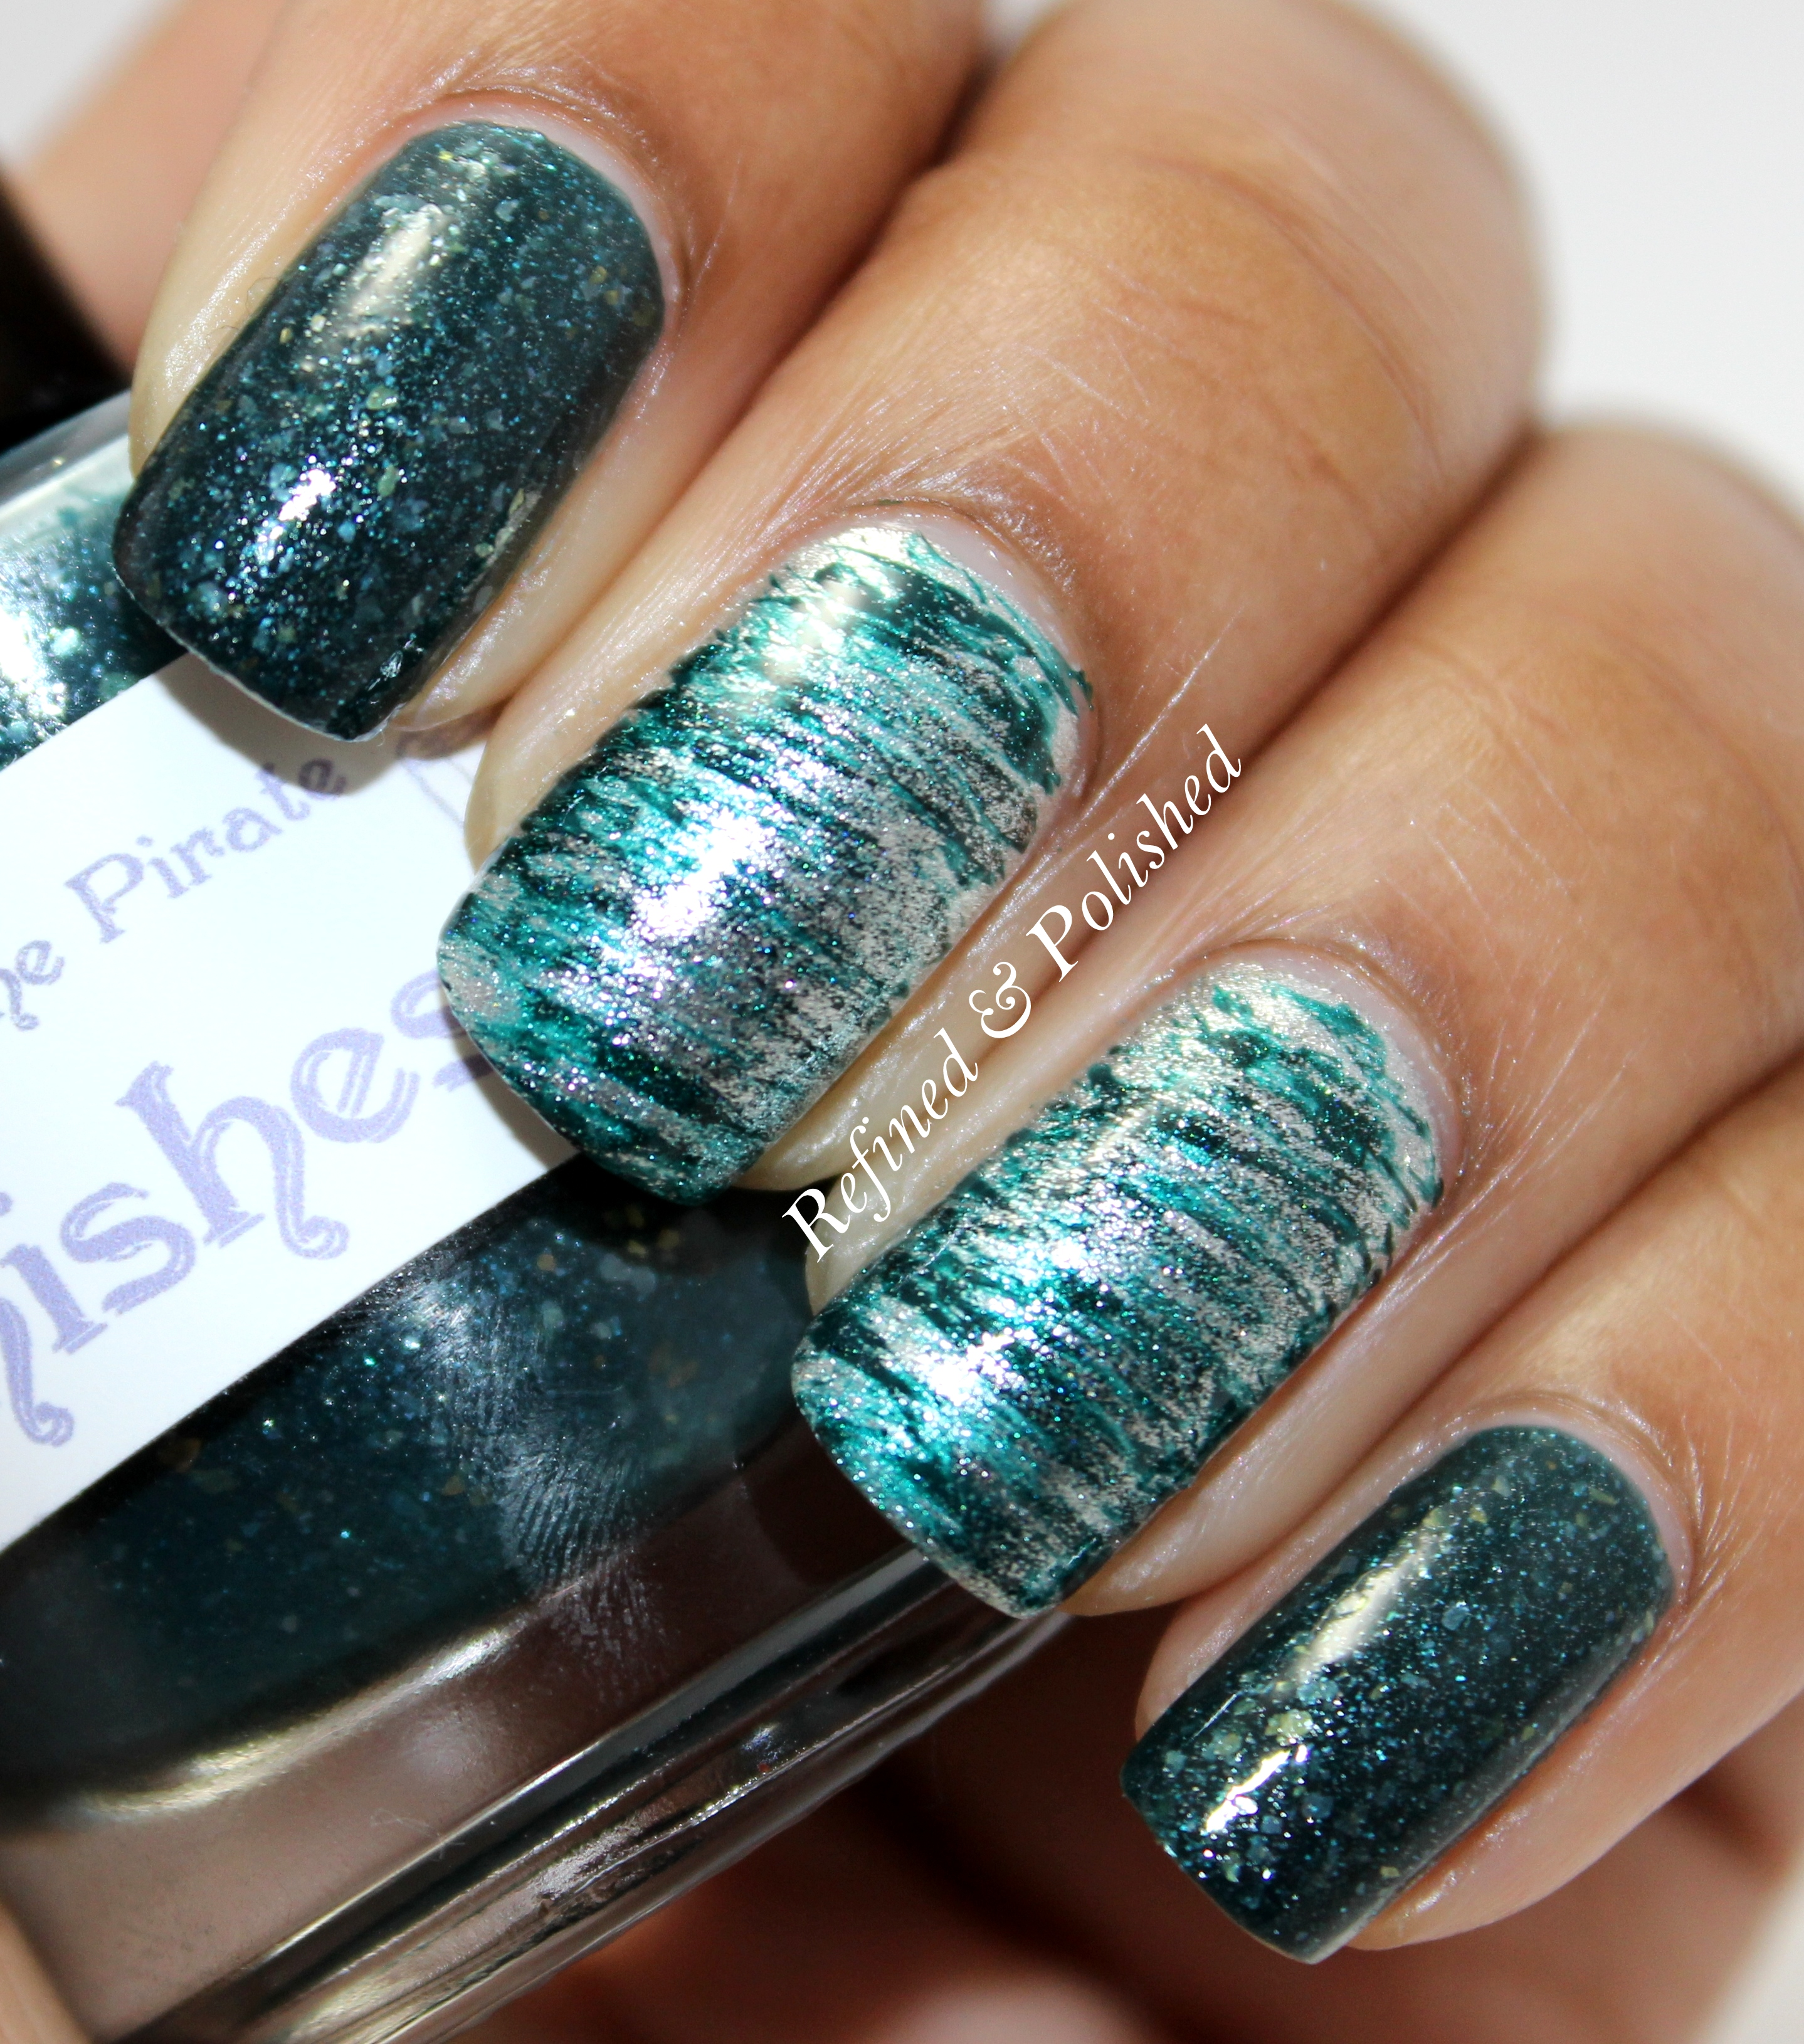 Busy Girl Nails Winter Nail Art Challenge